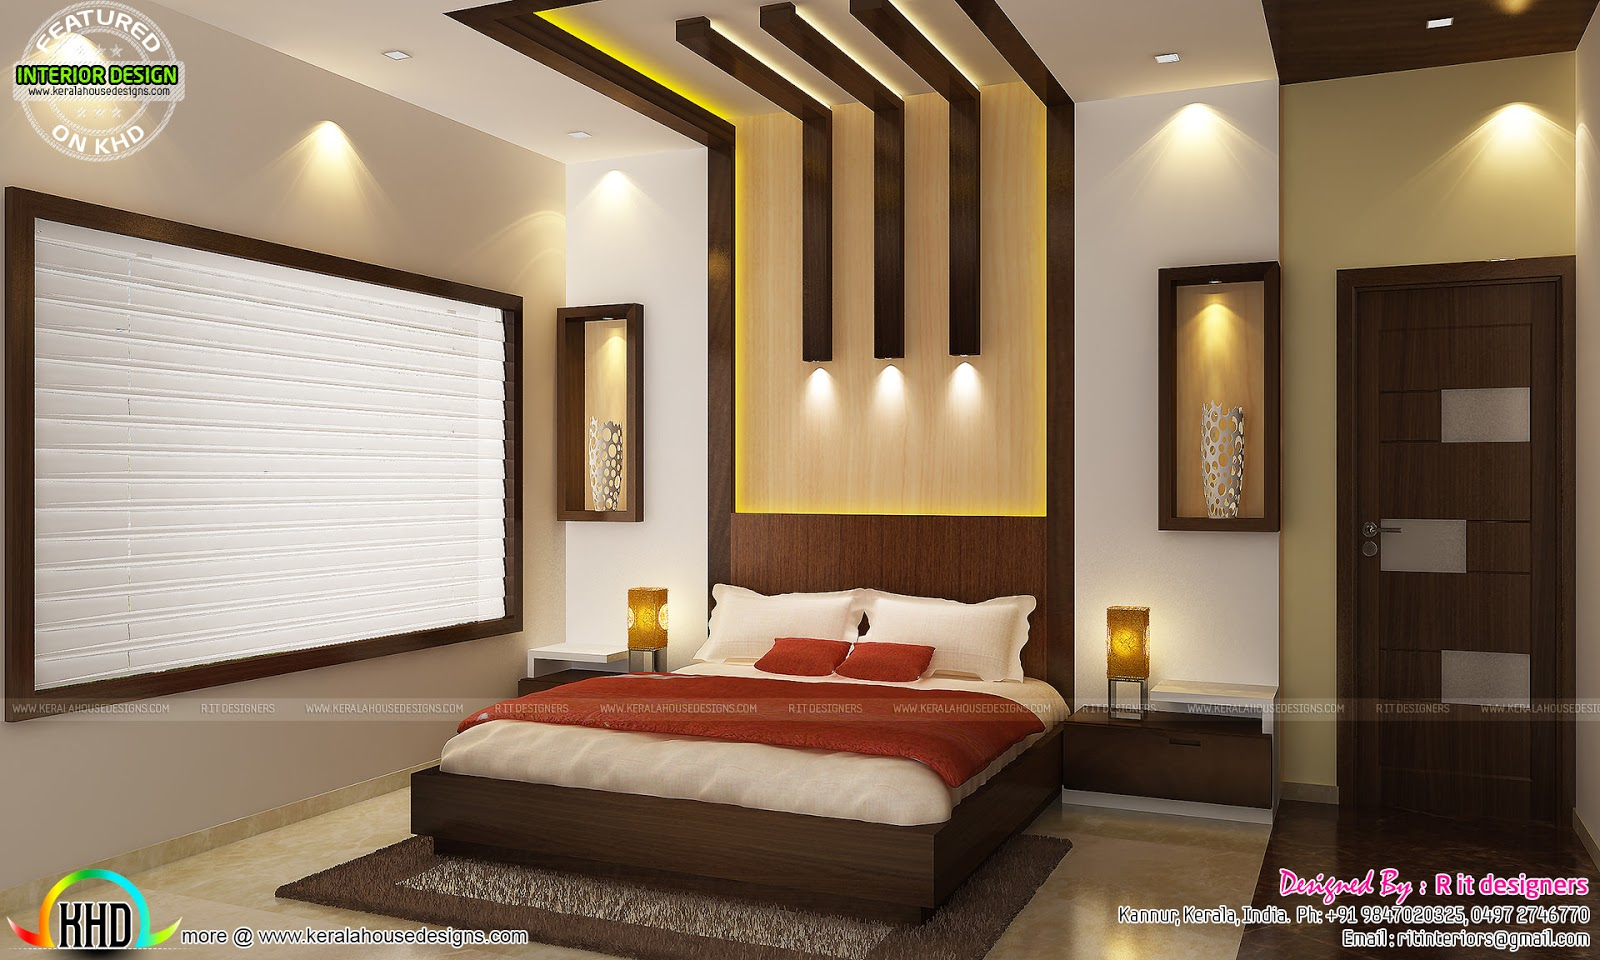 Kitchen living bedroom dining interior decor kerala home design and floor plans - Interior decoration for bedroom ...